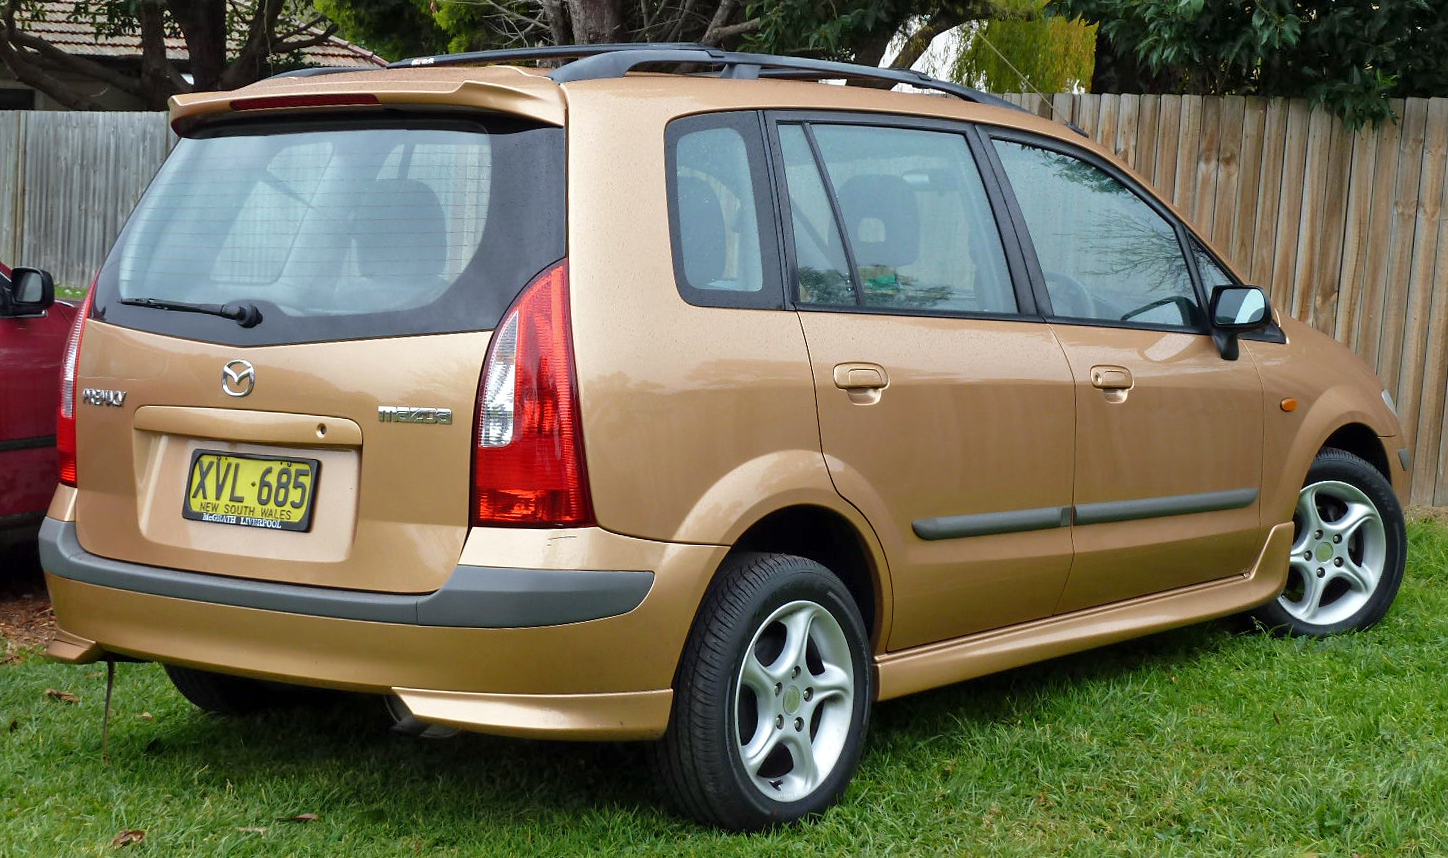 file:2001-2002 mazda premacy (cp) hatchback 01 - wikimedia commons